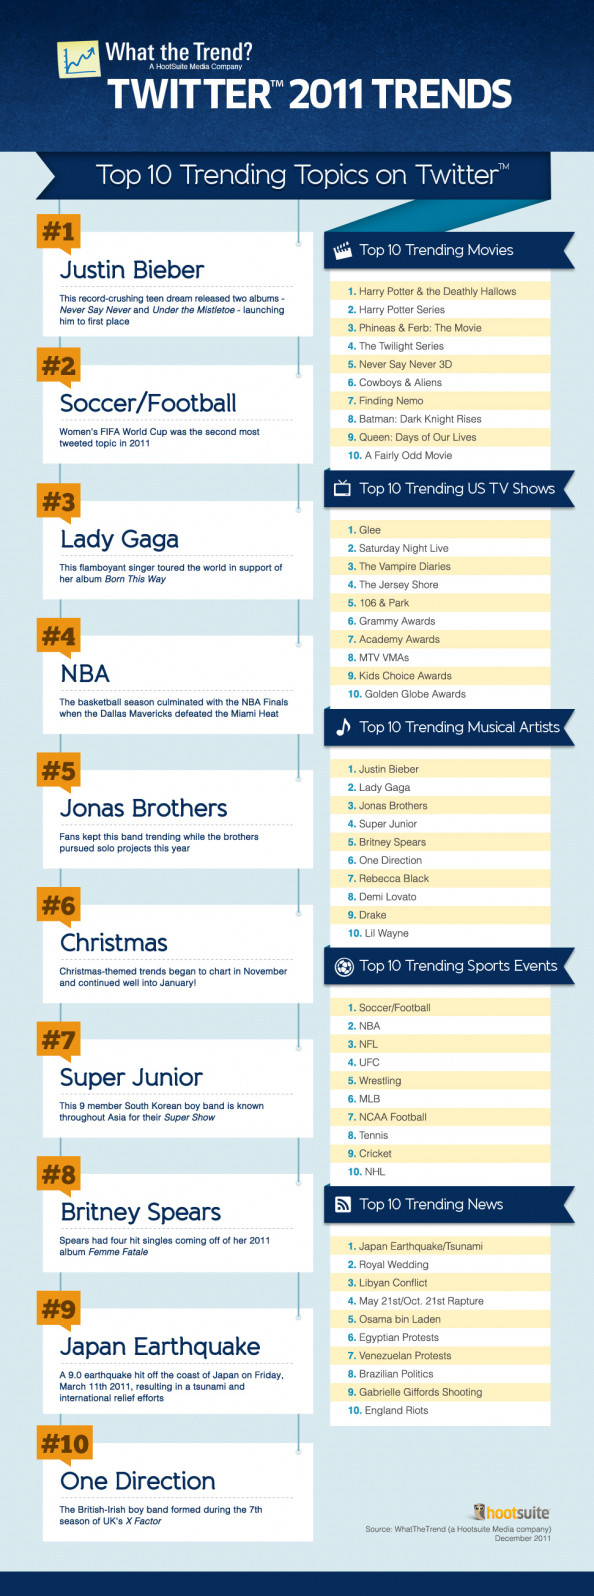 What The Trend Twitter 2011 Trends P1 Infographic